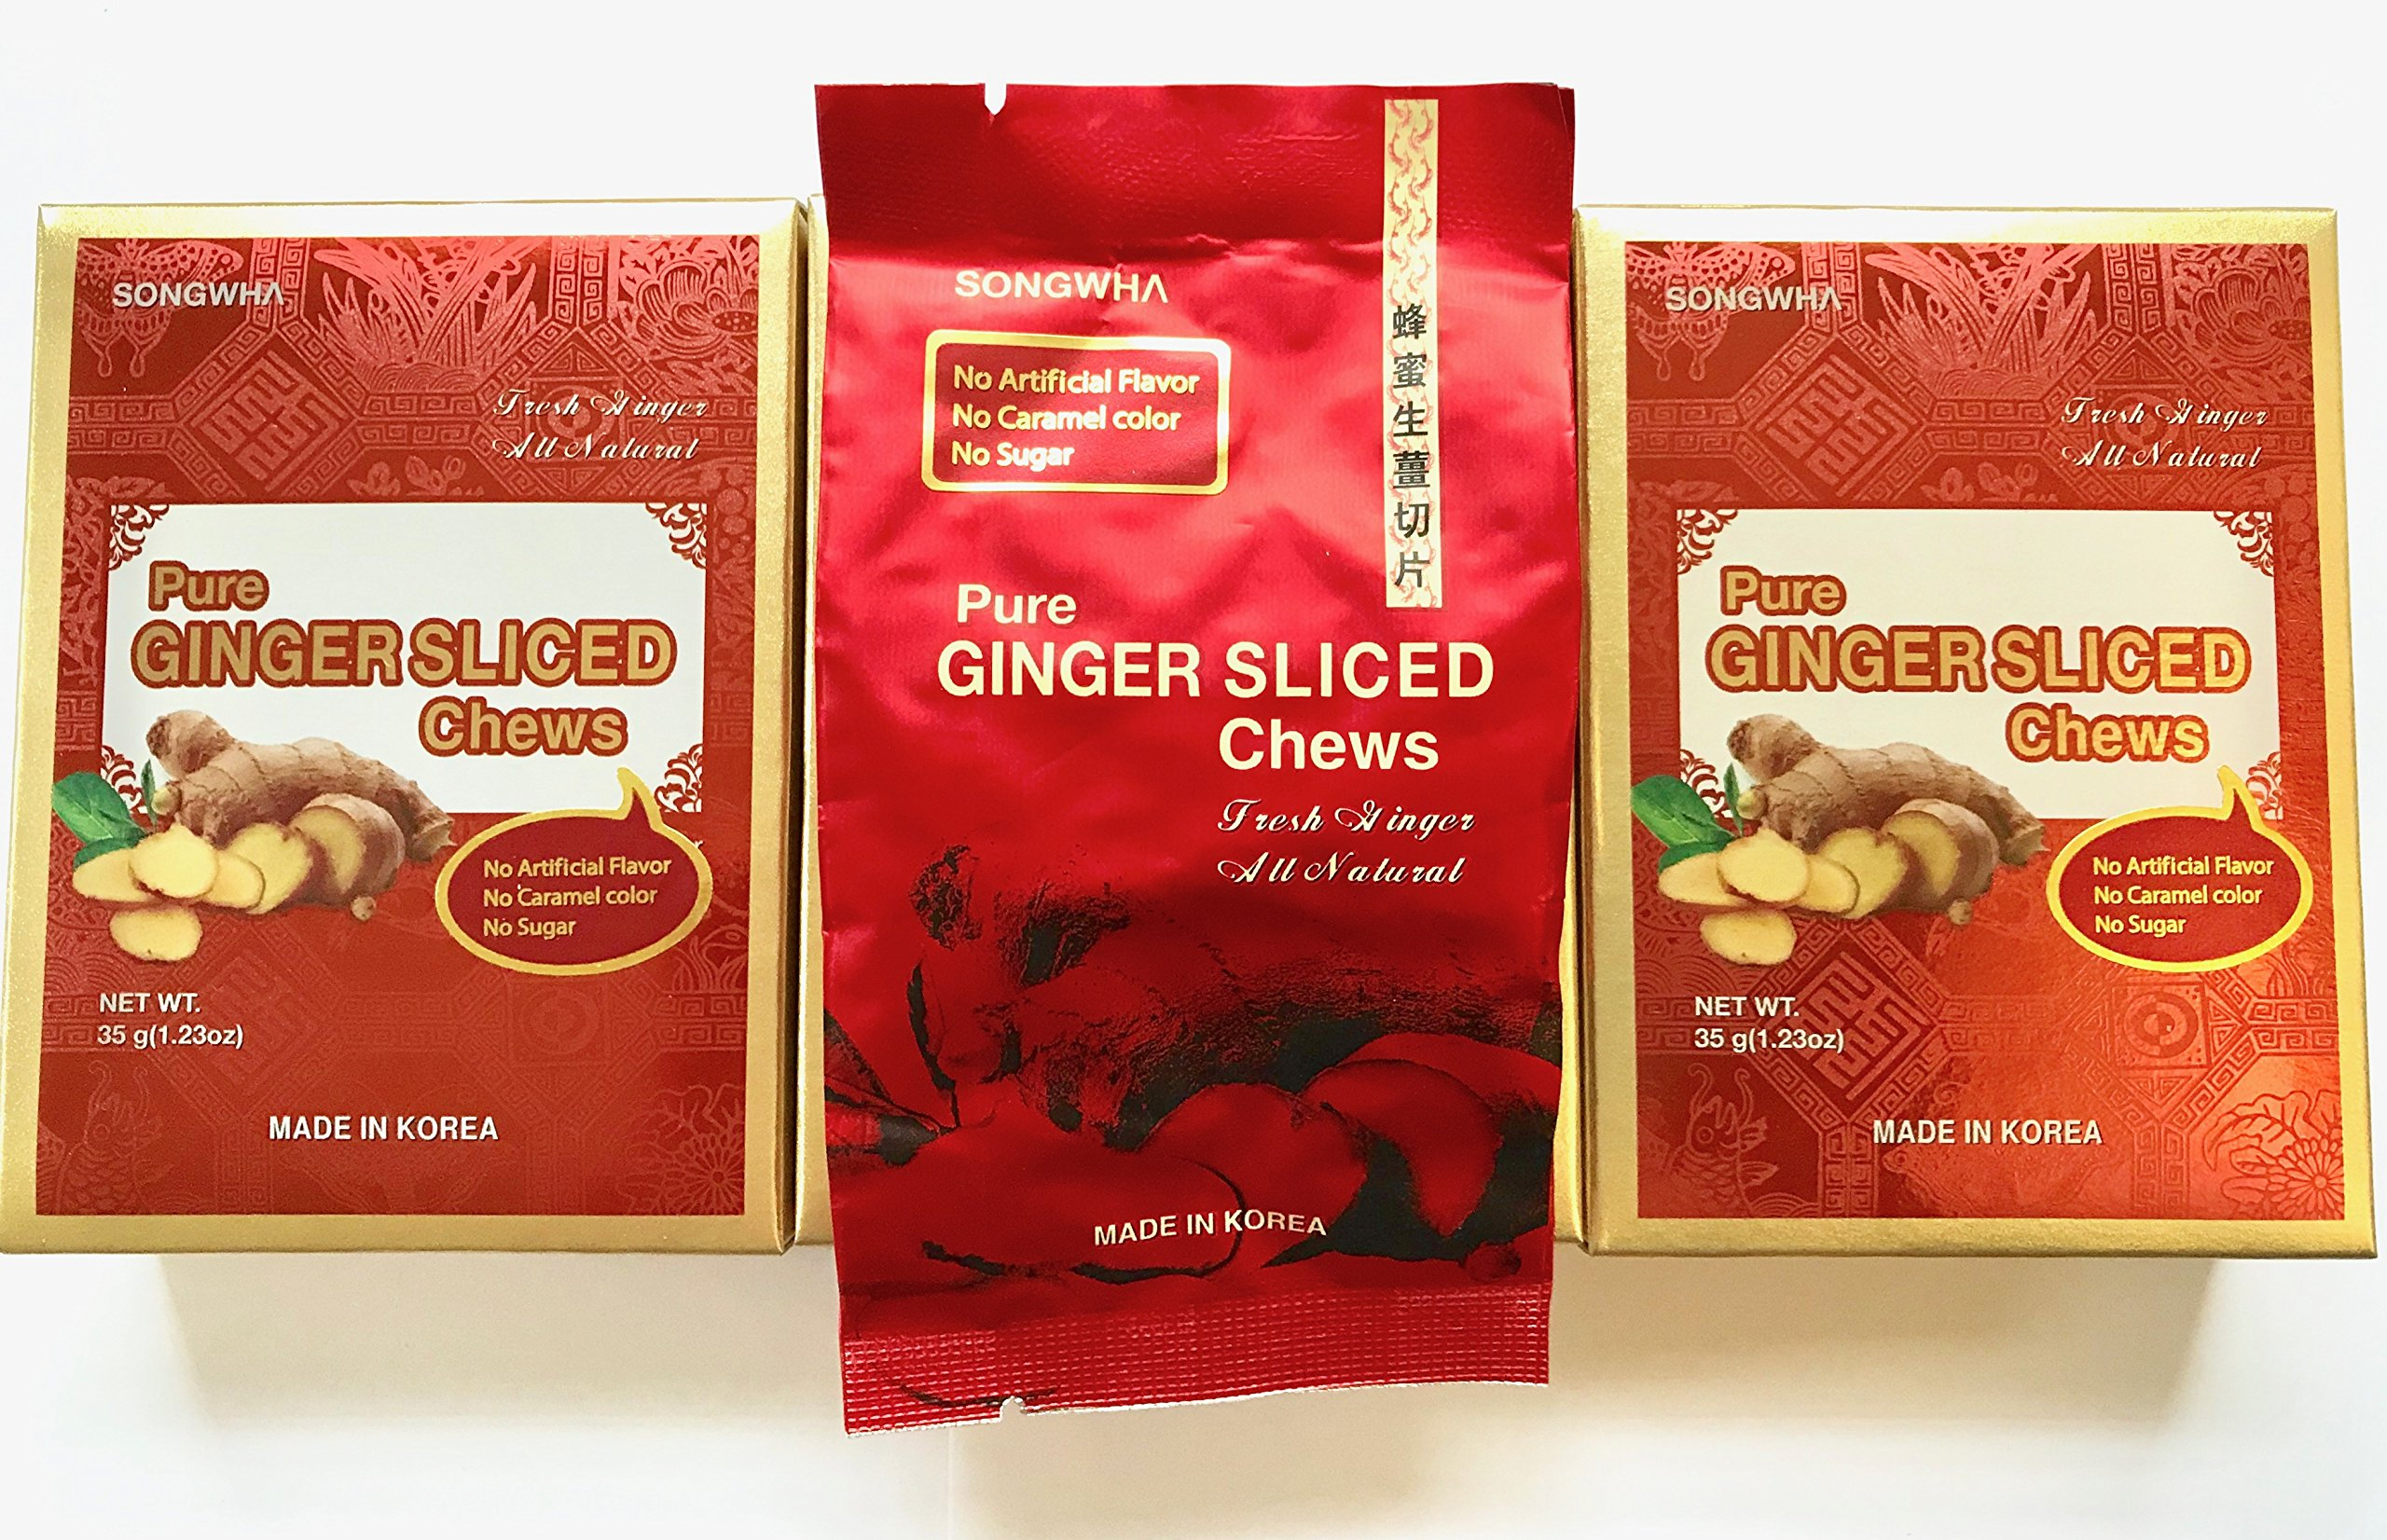 Songwha Pure Ginger Slices 3.7oz (Pack of 2) by Songwha (Image #4)